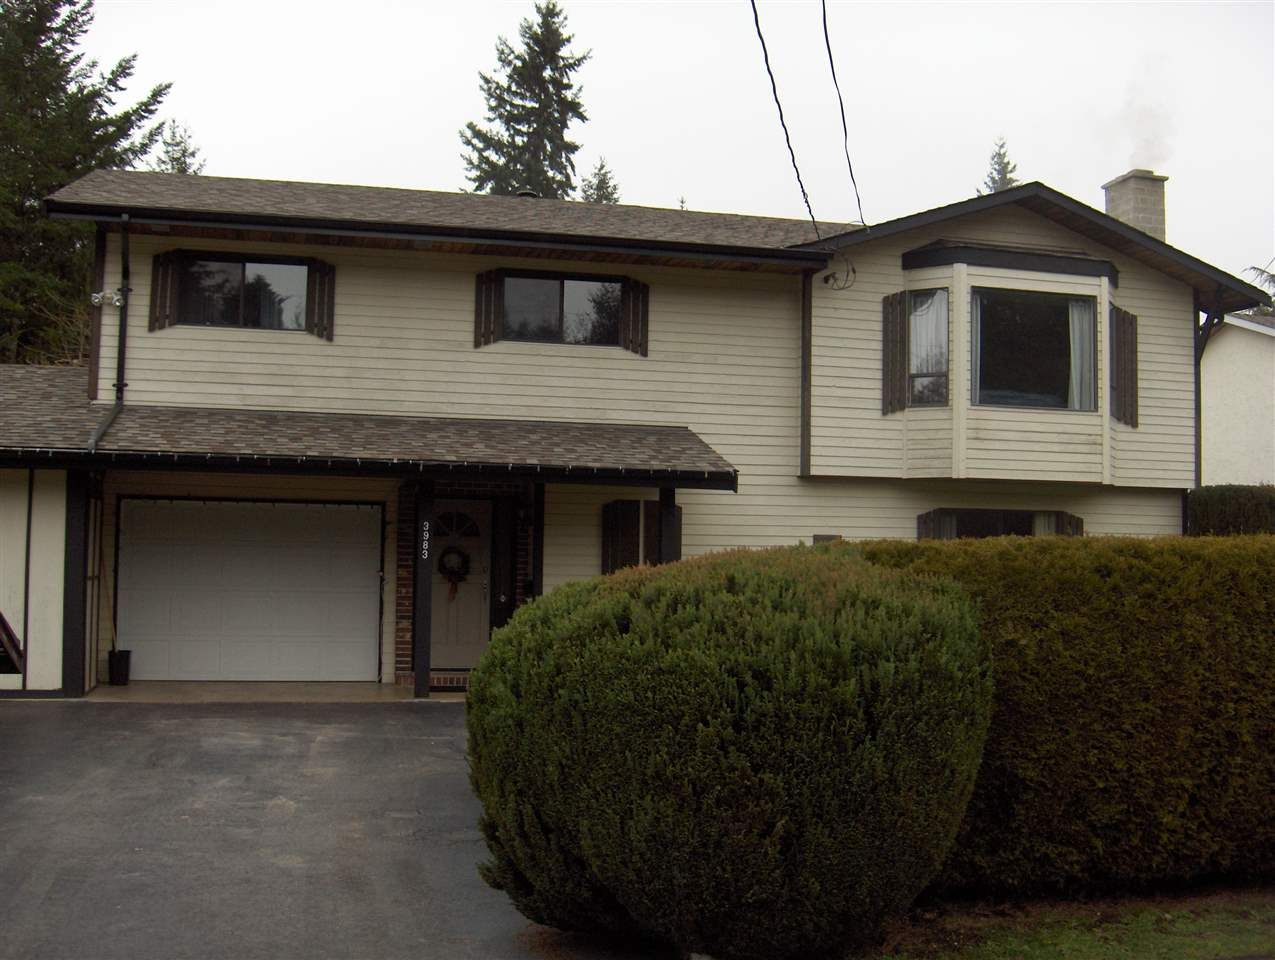 """Main Photo: 3983 202A Street in Langley: Brookswood Langley House for sale in """"BROOKSWOOD"""" : MLS®# R2047581"""